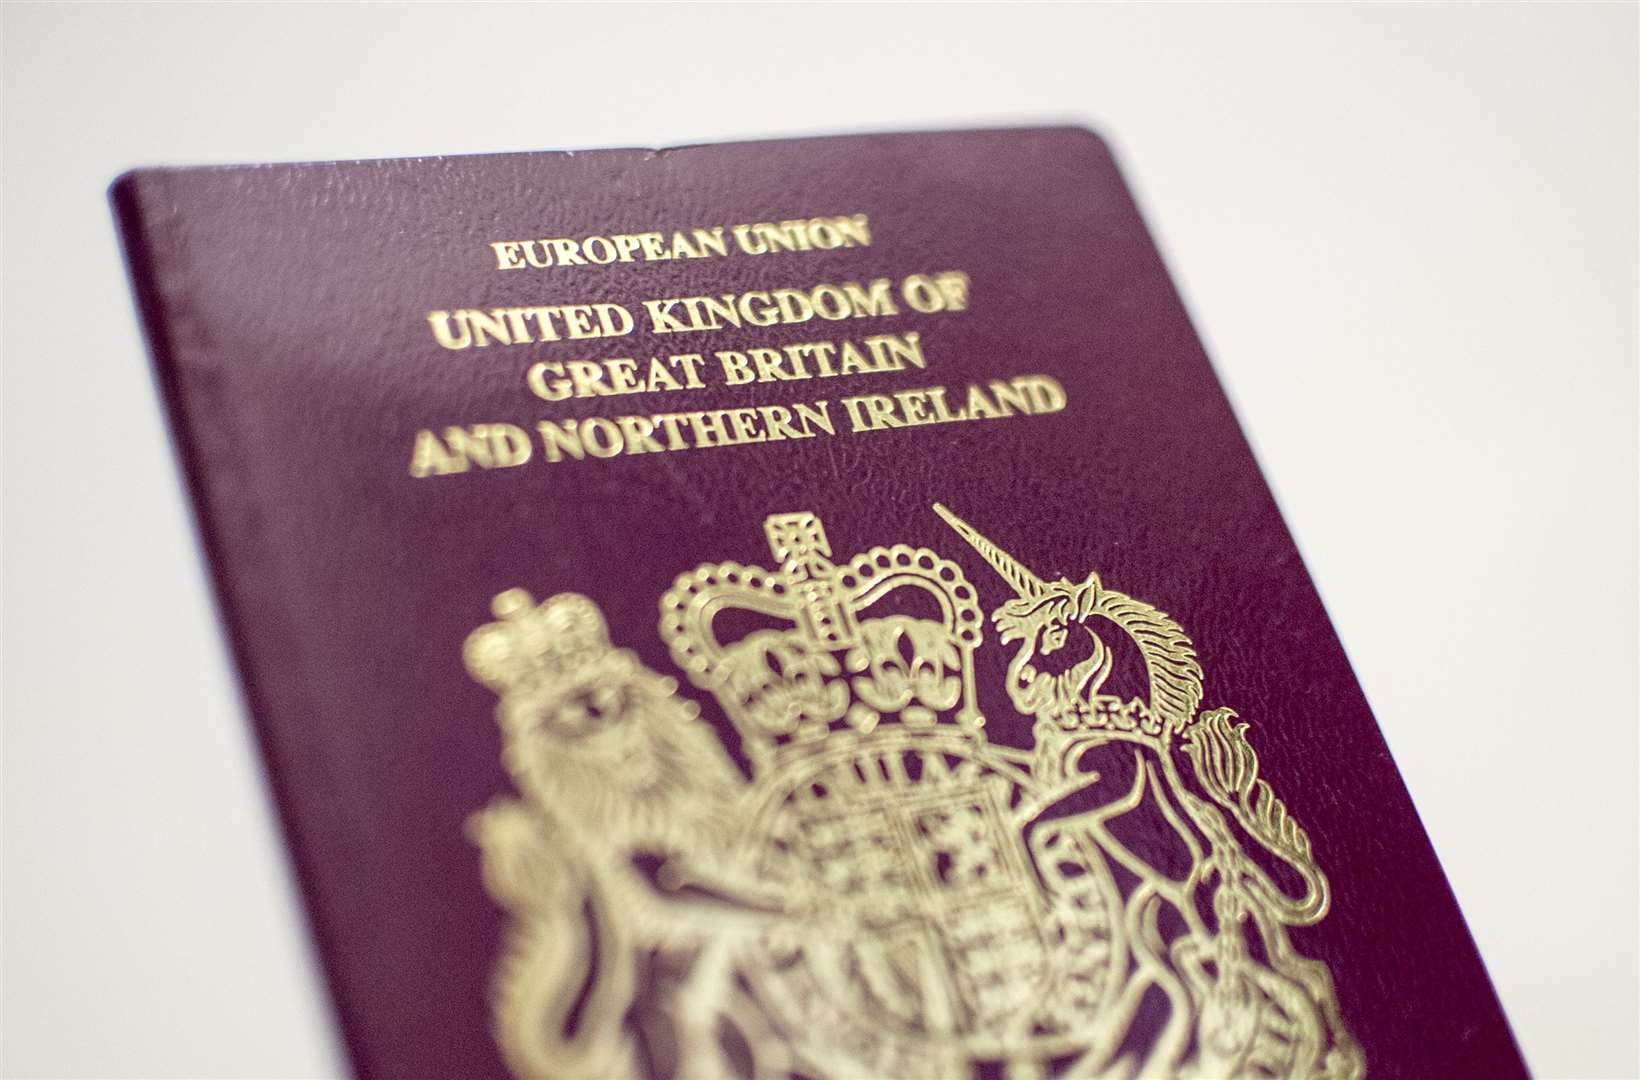 If you're looking to get a new passport then you may be waiting a long time - so why not holiday in Kent this summer?